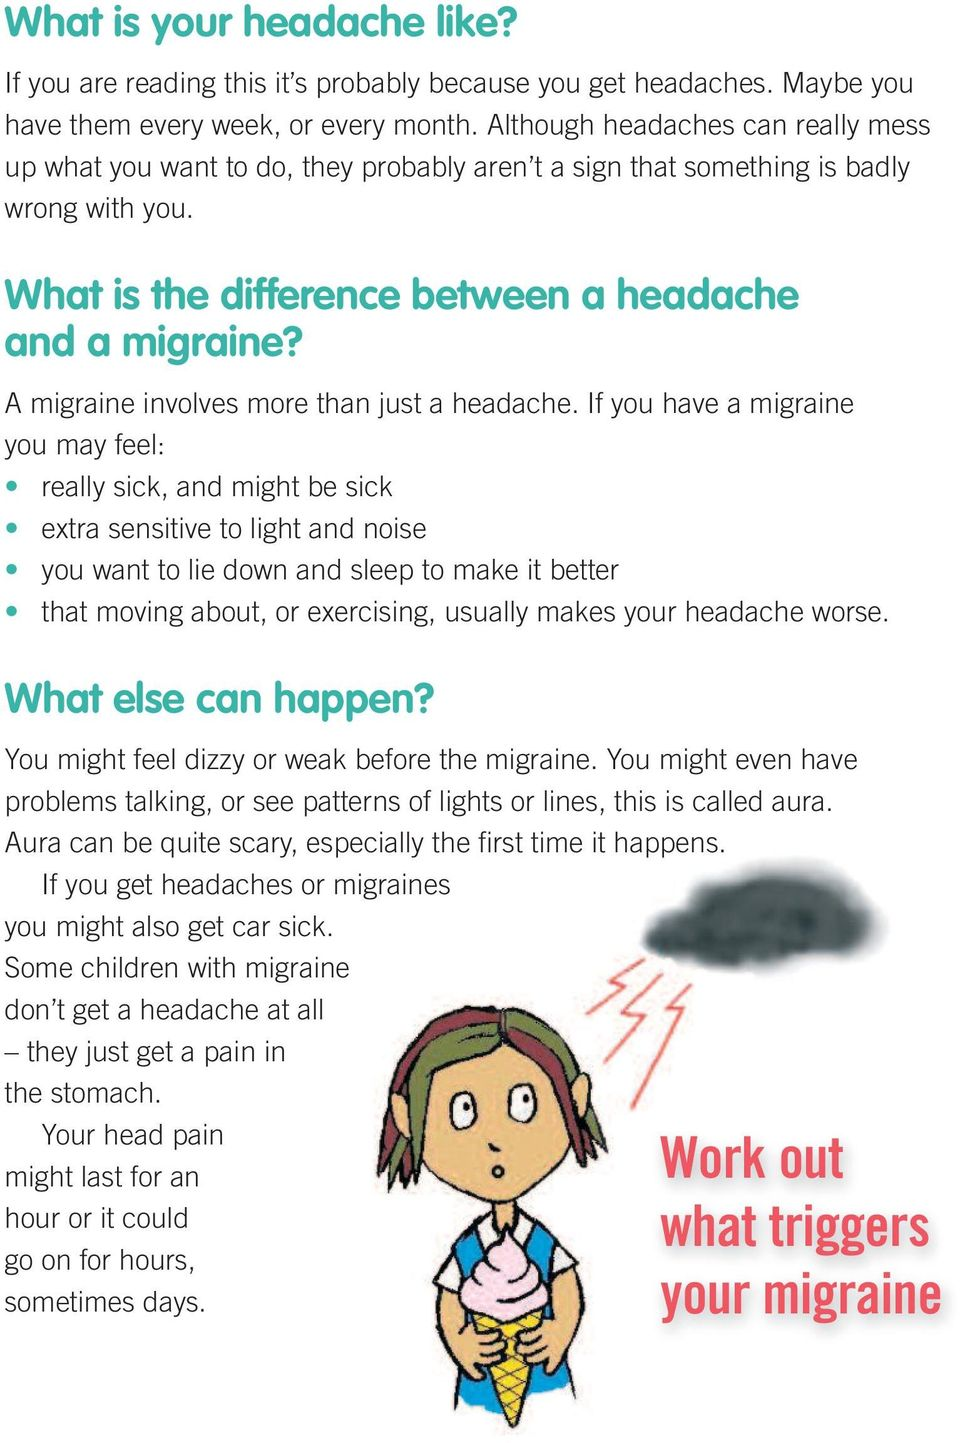 A migraine involves more than just a headache.